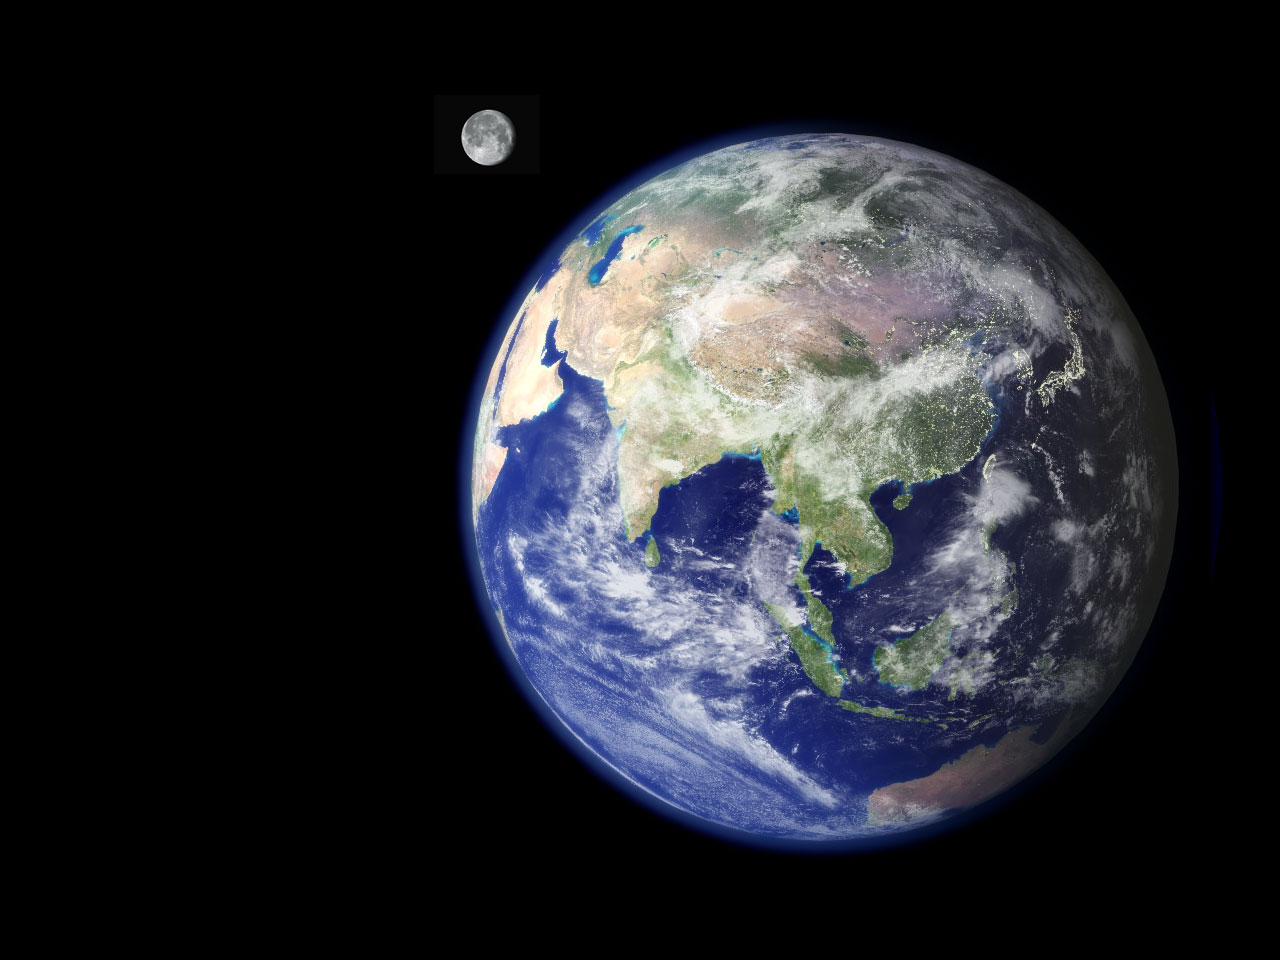 File:Nasa earth.jpg - Wikimedia Commons